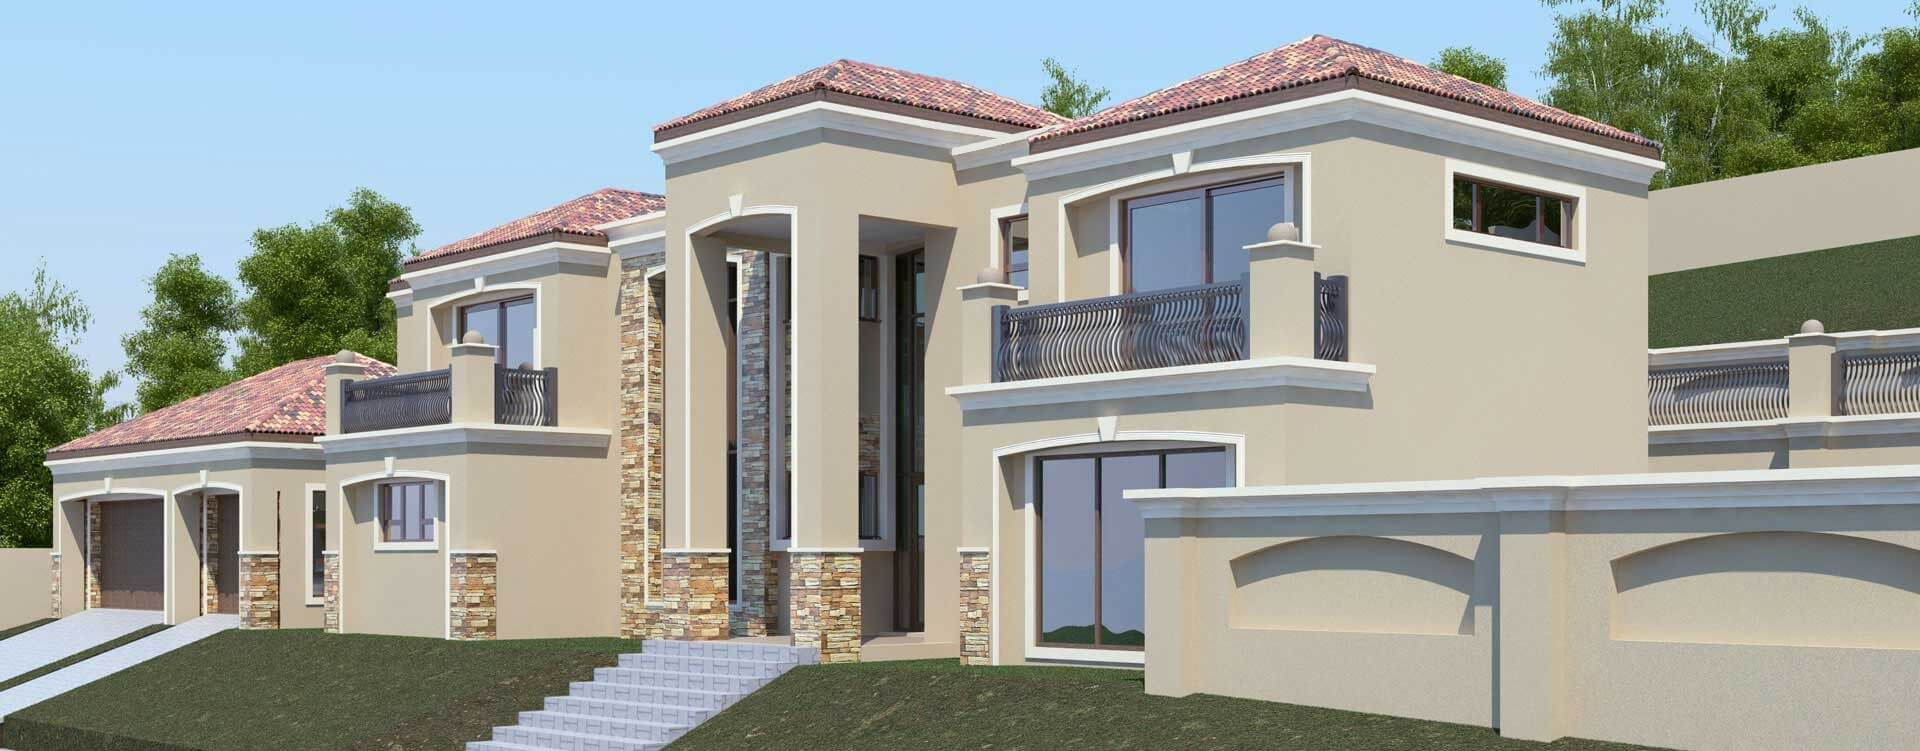 House Plans For Sale Online Modern House Designs And Plans - Modern house 5